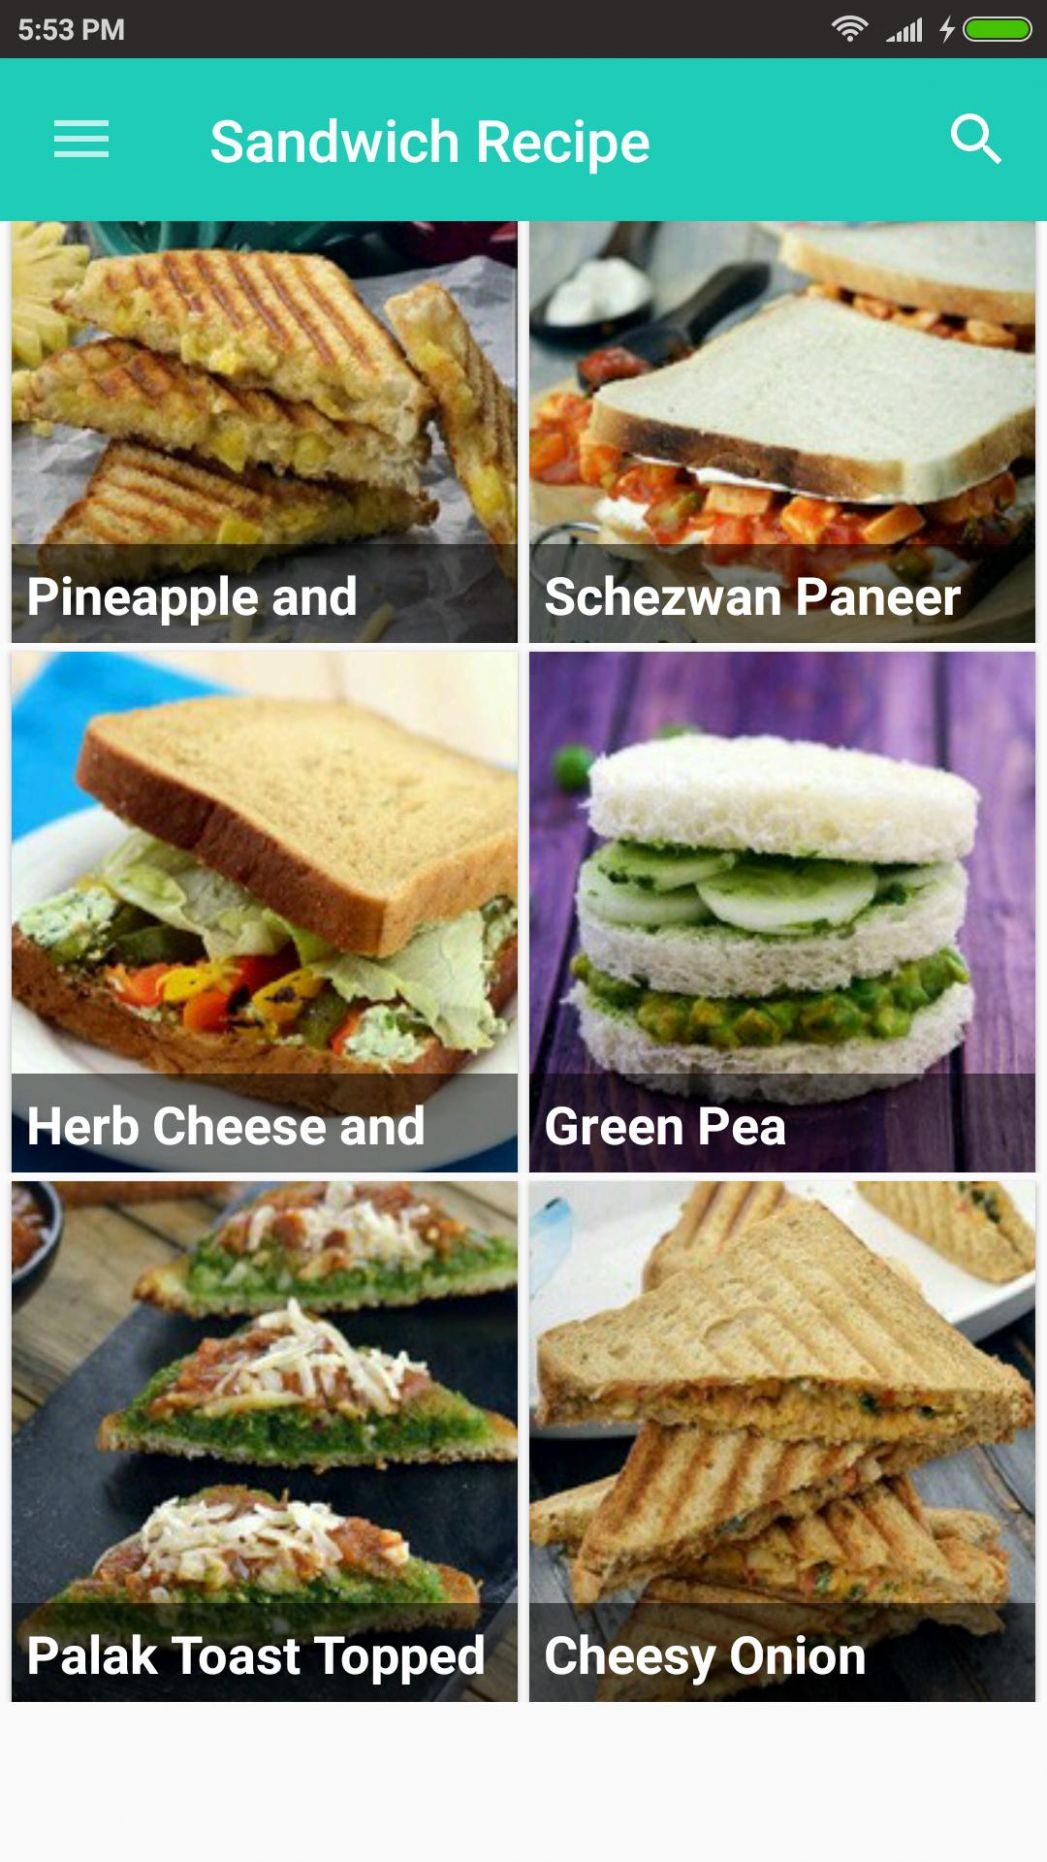 Sandwich Recipes for Android - APK Download - Sandwich Recipes Download